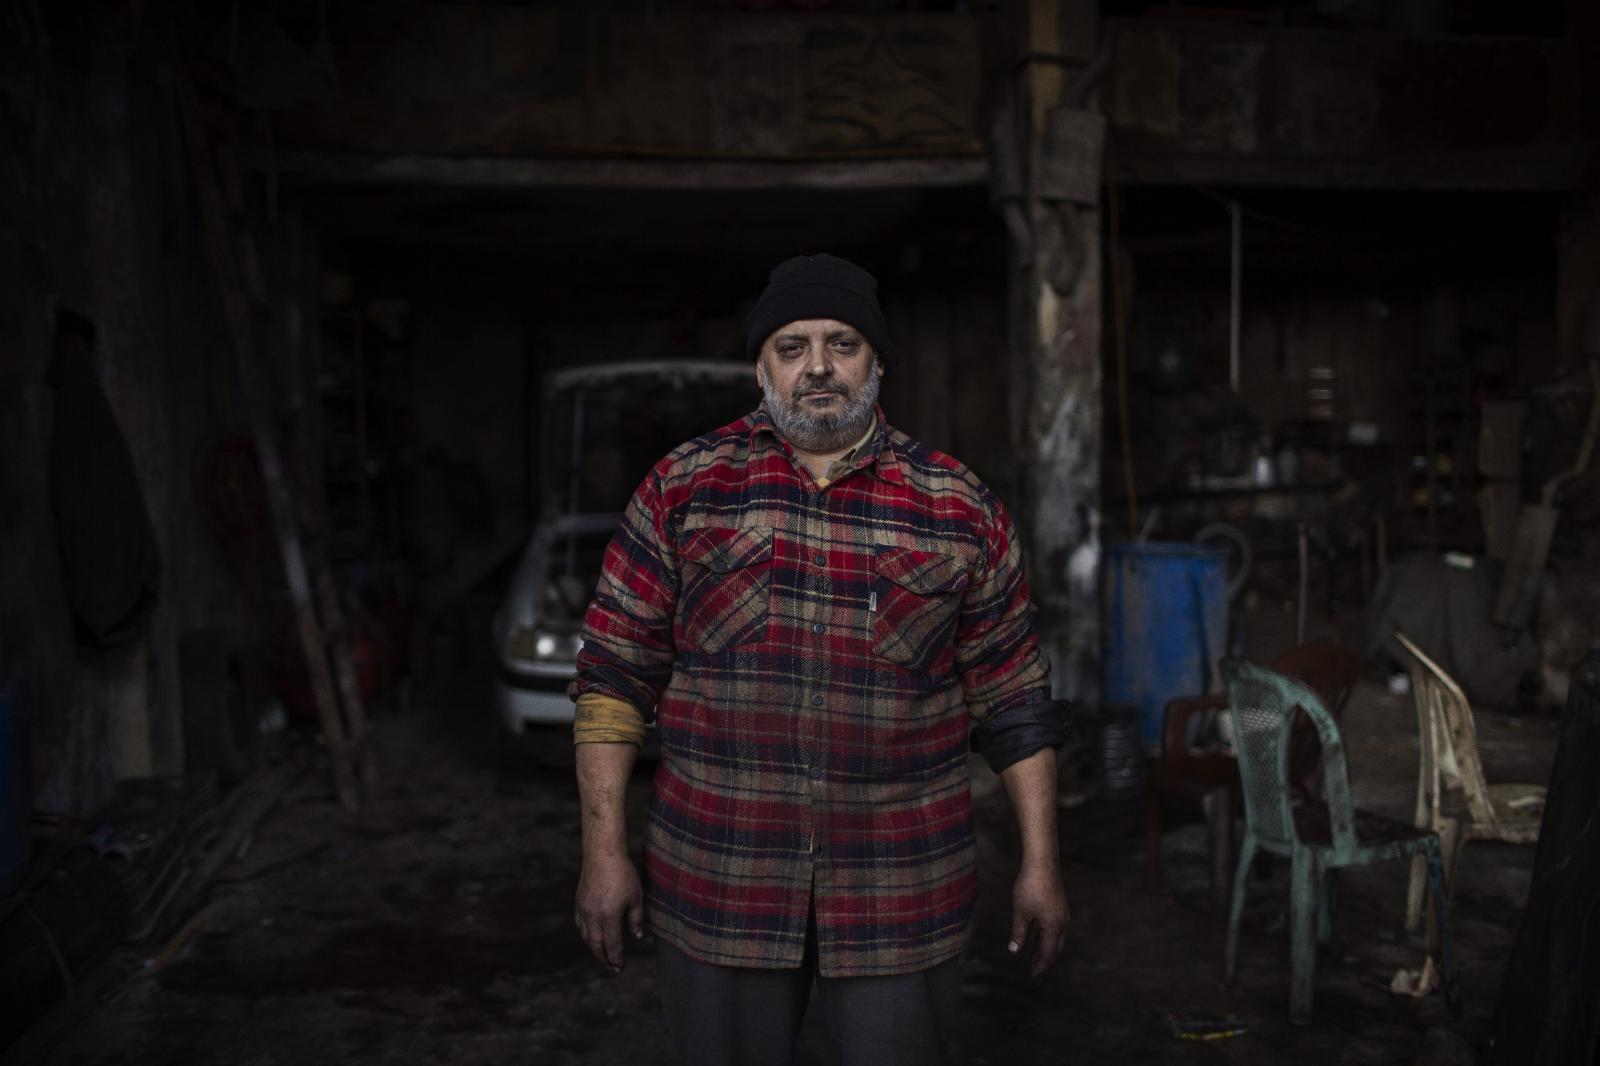 Issam al Moubayed, car mechanic. He's had two heart surgeries but has to work, earning around 15000 LL a day. Bab al-Tabbaneh, Tripoli. Lebanon. December 11th, 2019. Diego Ibarra Sánchez for CNN